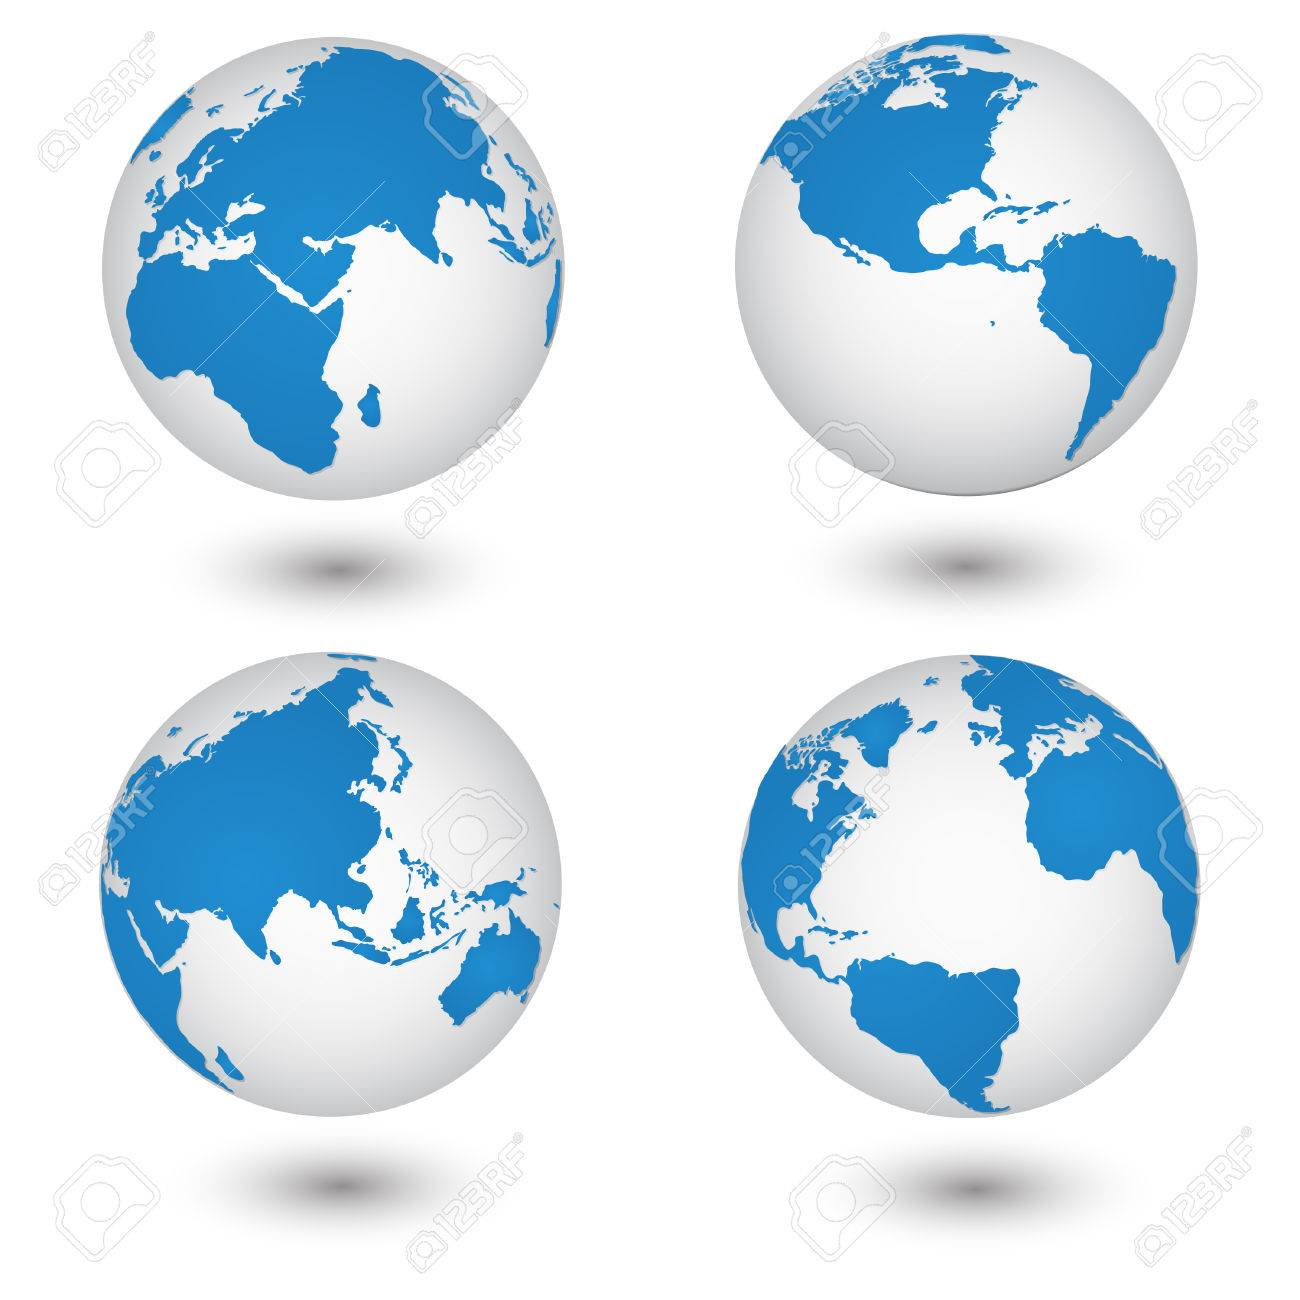 World map and globe detail vector illustration eps 10 royalty free vector world map and globe detail vector illustration eps 10 gumiabroncs Gallery